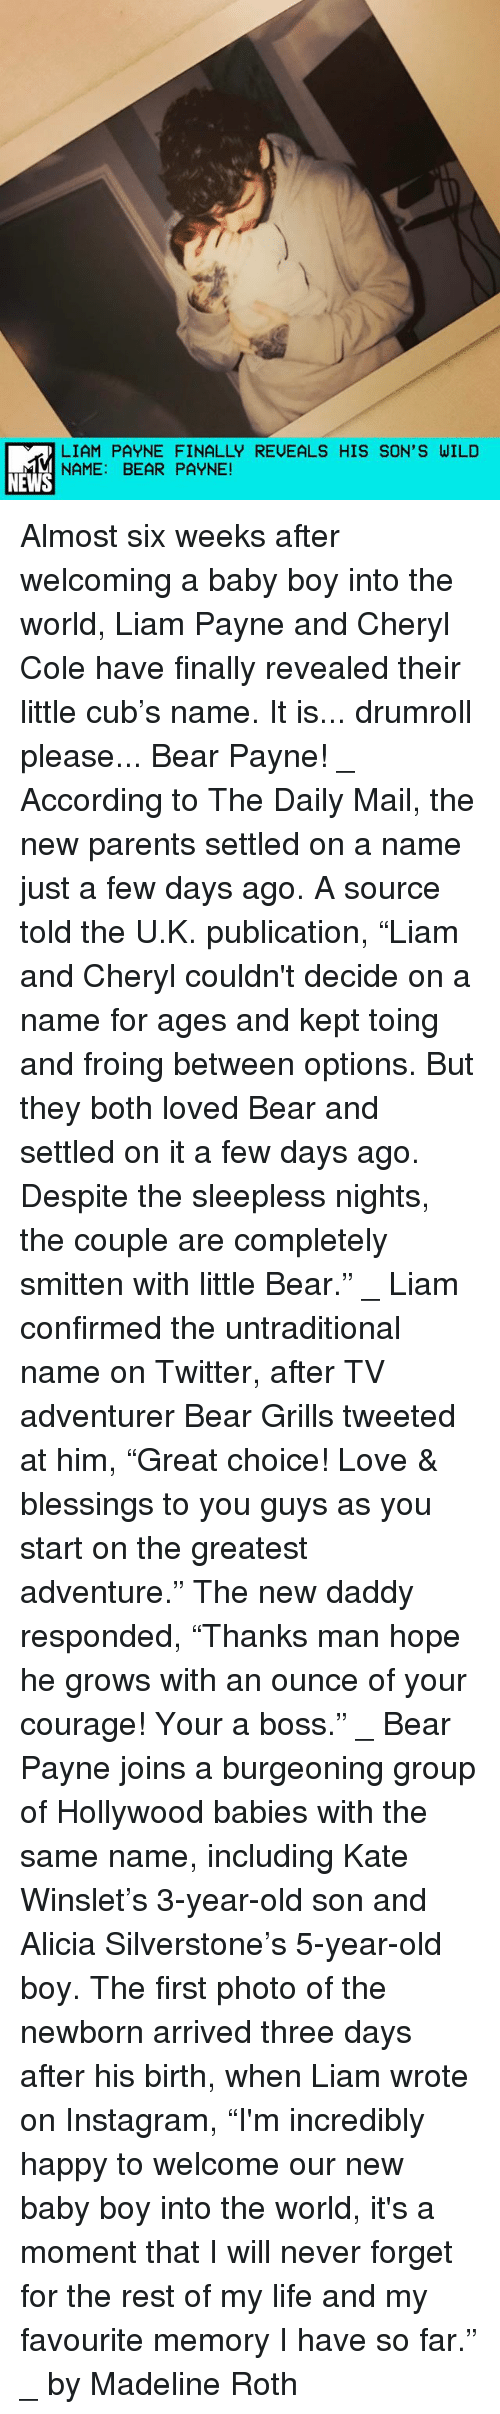 "little bear: LIAM PAYNE FINALLY REUEALS HIS SON' S WILD  NAME: BEAR PAYNE!  NEWS Almost six weeks after welcoming a baby boy into the world, Liam Payne and Cheryl Cole have finally revealed their little cub's name. It is... drumroll please... Bear Payne! _ According to The Daily Mail, the new parents settled on a name just a few days ago. A source told the U.K. publication, ""Liam and Cheryl couldn't decide on a name for ages and kept toing and froing between options. But they both loved Bear and settled on it a few days ago. Despite the sleepless nights, the couple are completely smitten with little Bear."" _ Liam confirmed the untraditional name on Twitter, after TV adventurer Bear Grills tweeted at him, ""Great choice! Love & blessings to you guys as you start on the greatest adventure."" The new daddy responded, ""Thanks man hope he grows with an ounce of your courage! Your a boss."" _ Bear Payne joins a burgeoning group of Hollywood babies with the same name, including Kate Winslet's 3-year-old son and Alicia Silverstone's 5-year-old boy. The first photo of the newborn arrived three days after his birth, when Liam wrote on Instagram, ""I'm incredibly happy to welcome our new baby boy into the world, it's a moment that I will never forget for the rest of my life and my favourite memory I have so far."" _ by Madeline Roth"